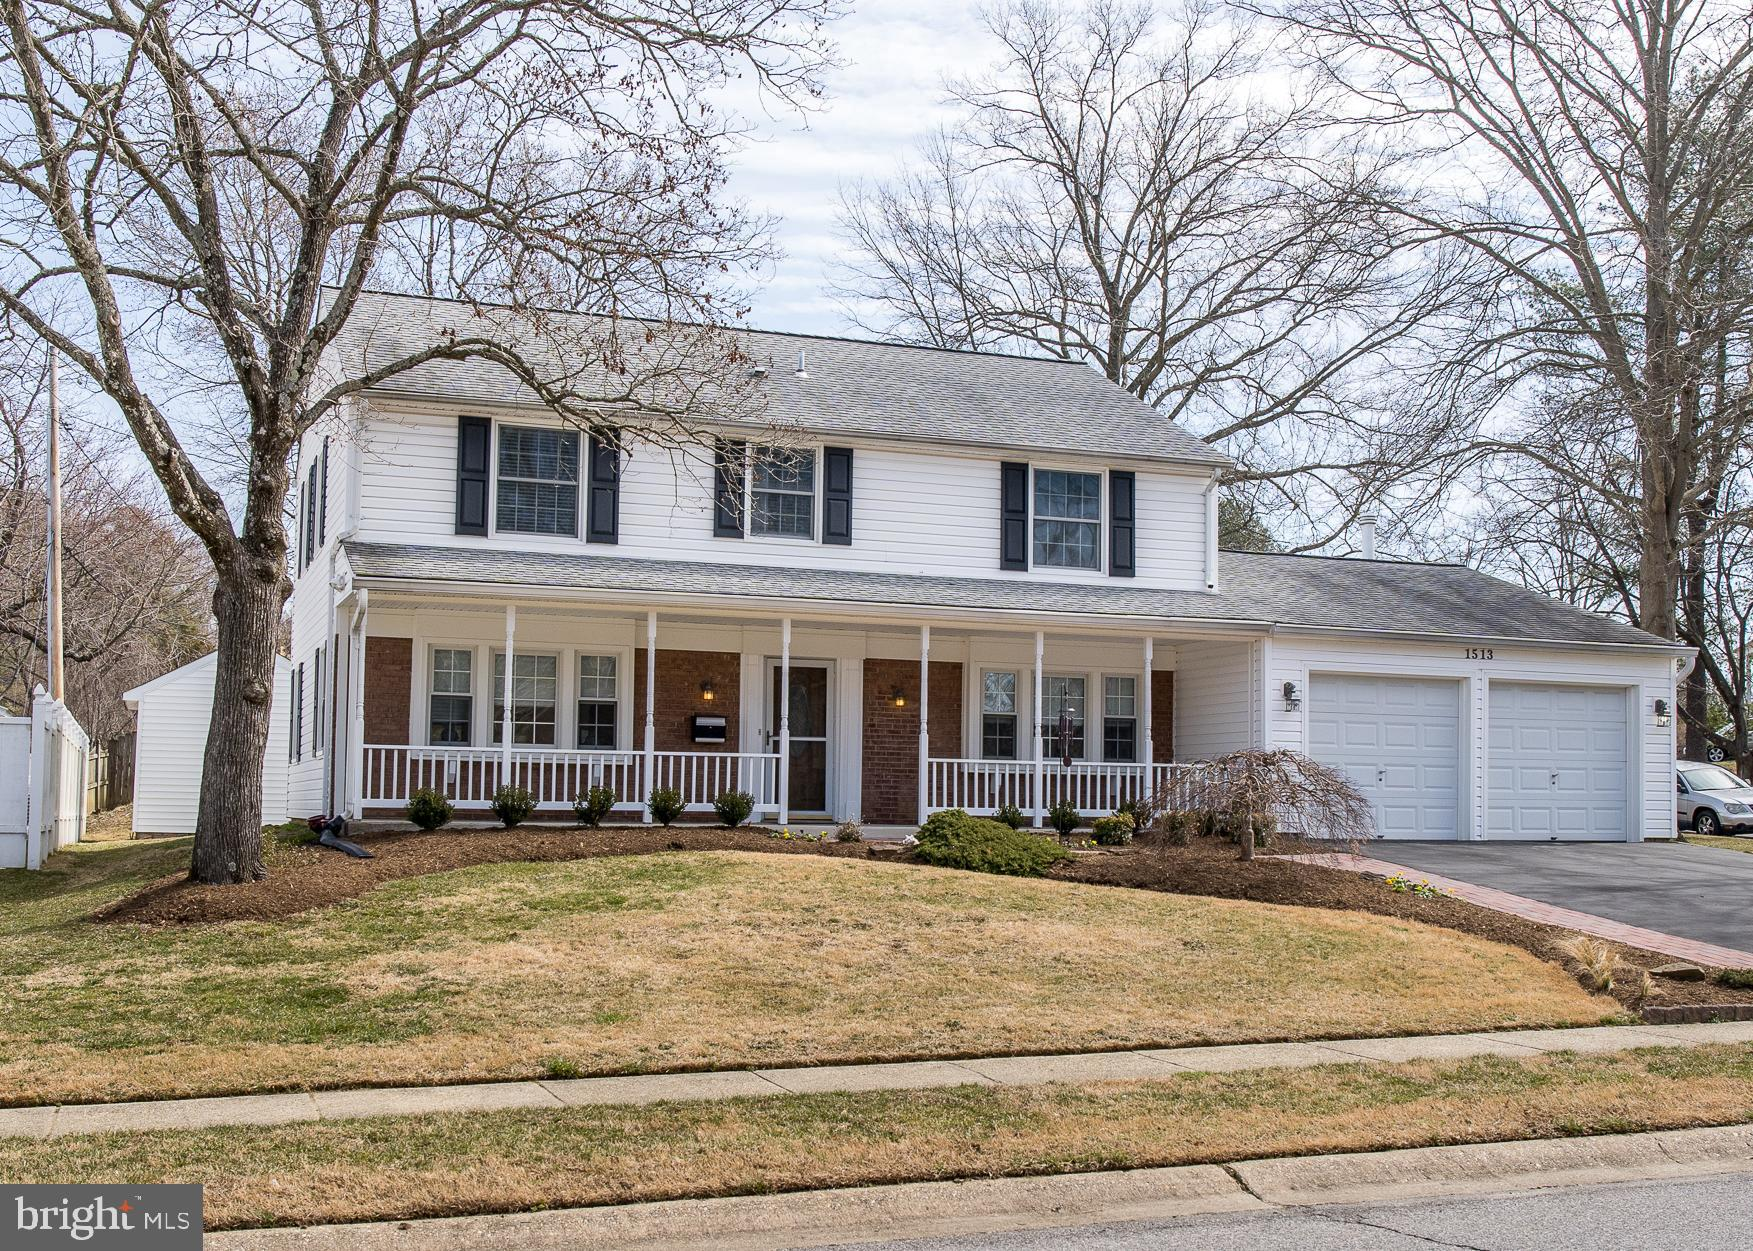 1513 PERRELL LANE, BOWIE, MD 20716